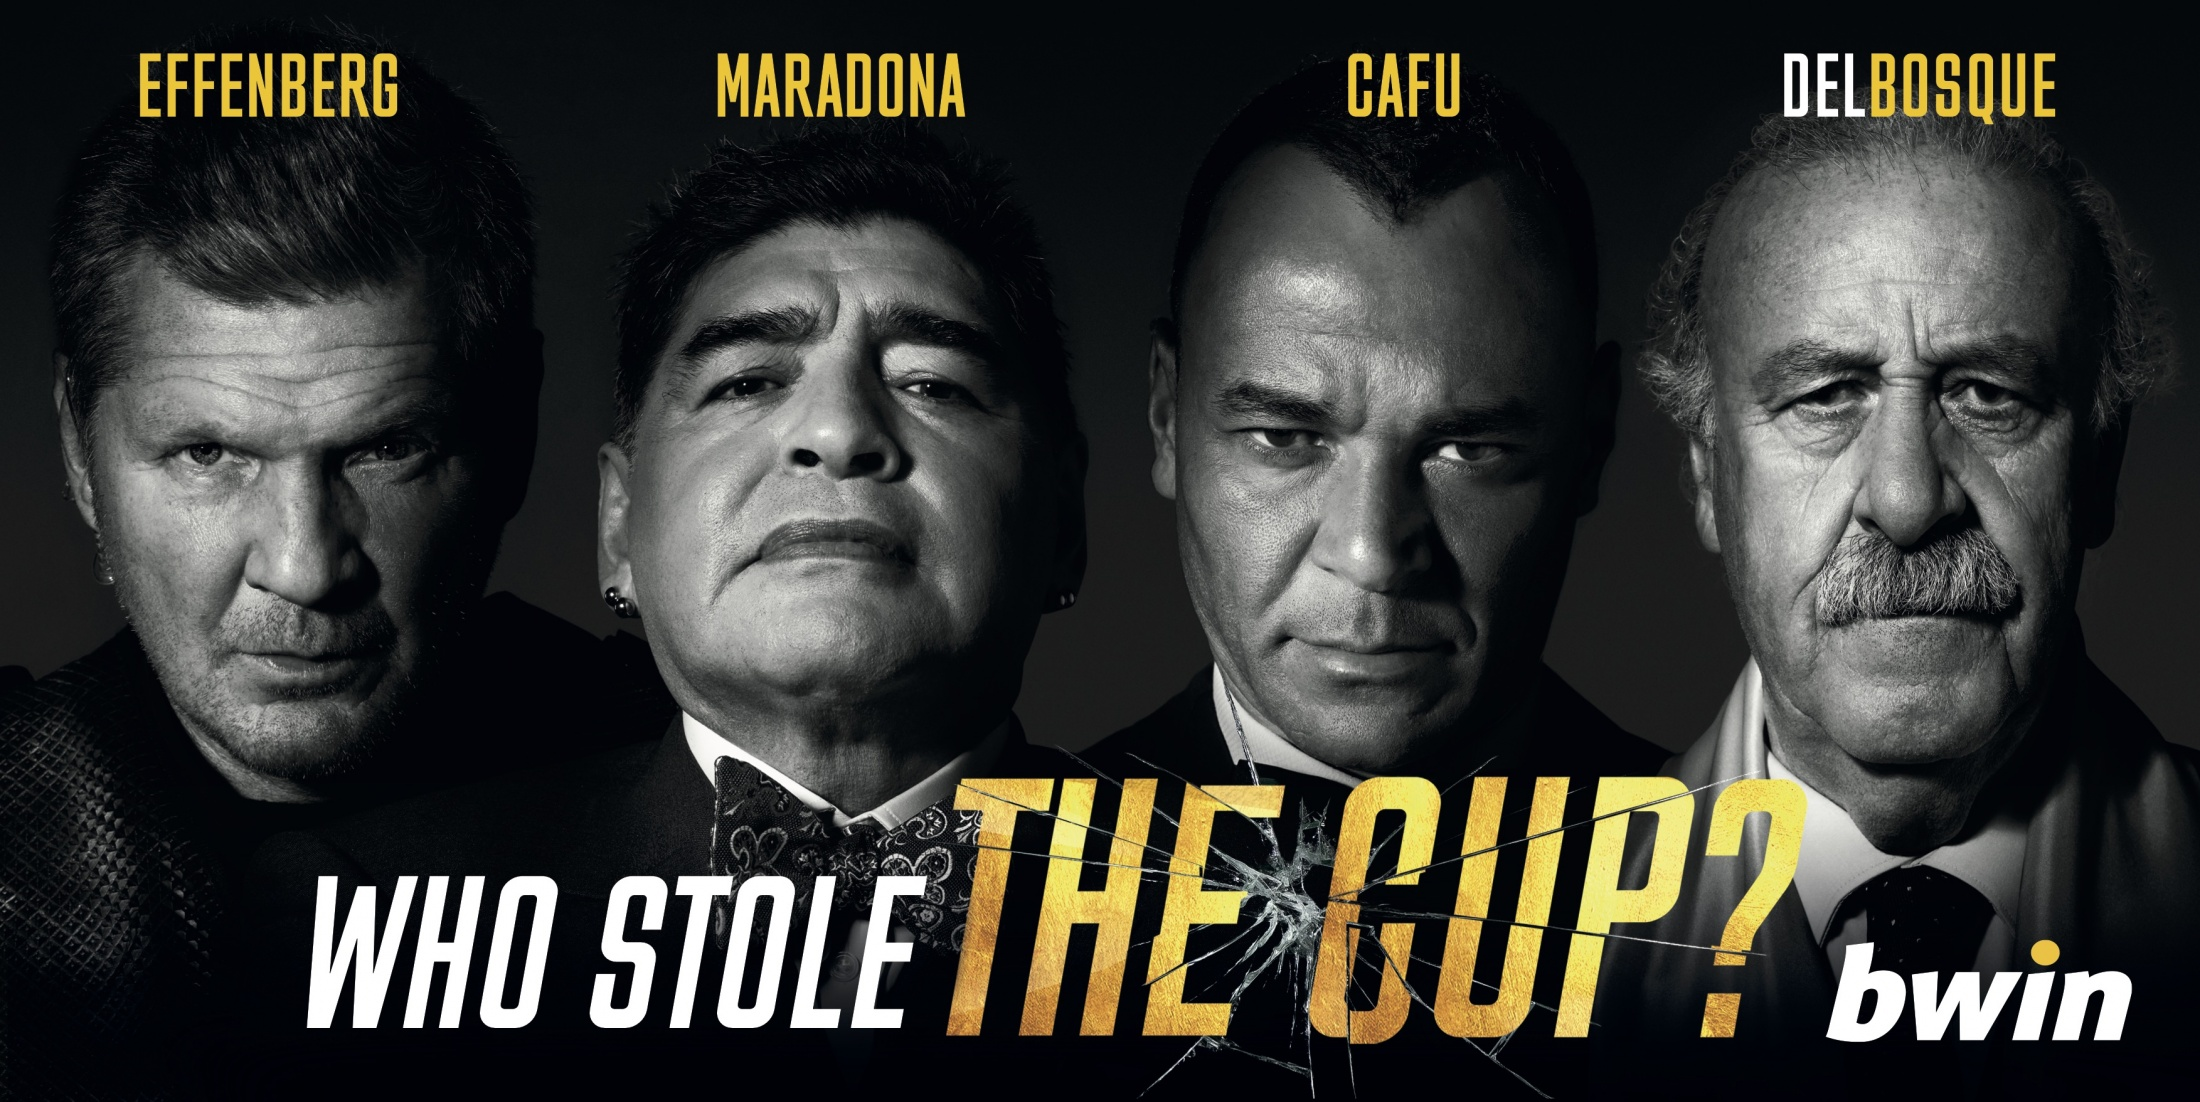 Thumbnail for Who stole the Cup?